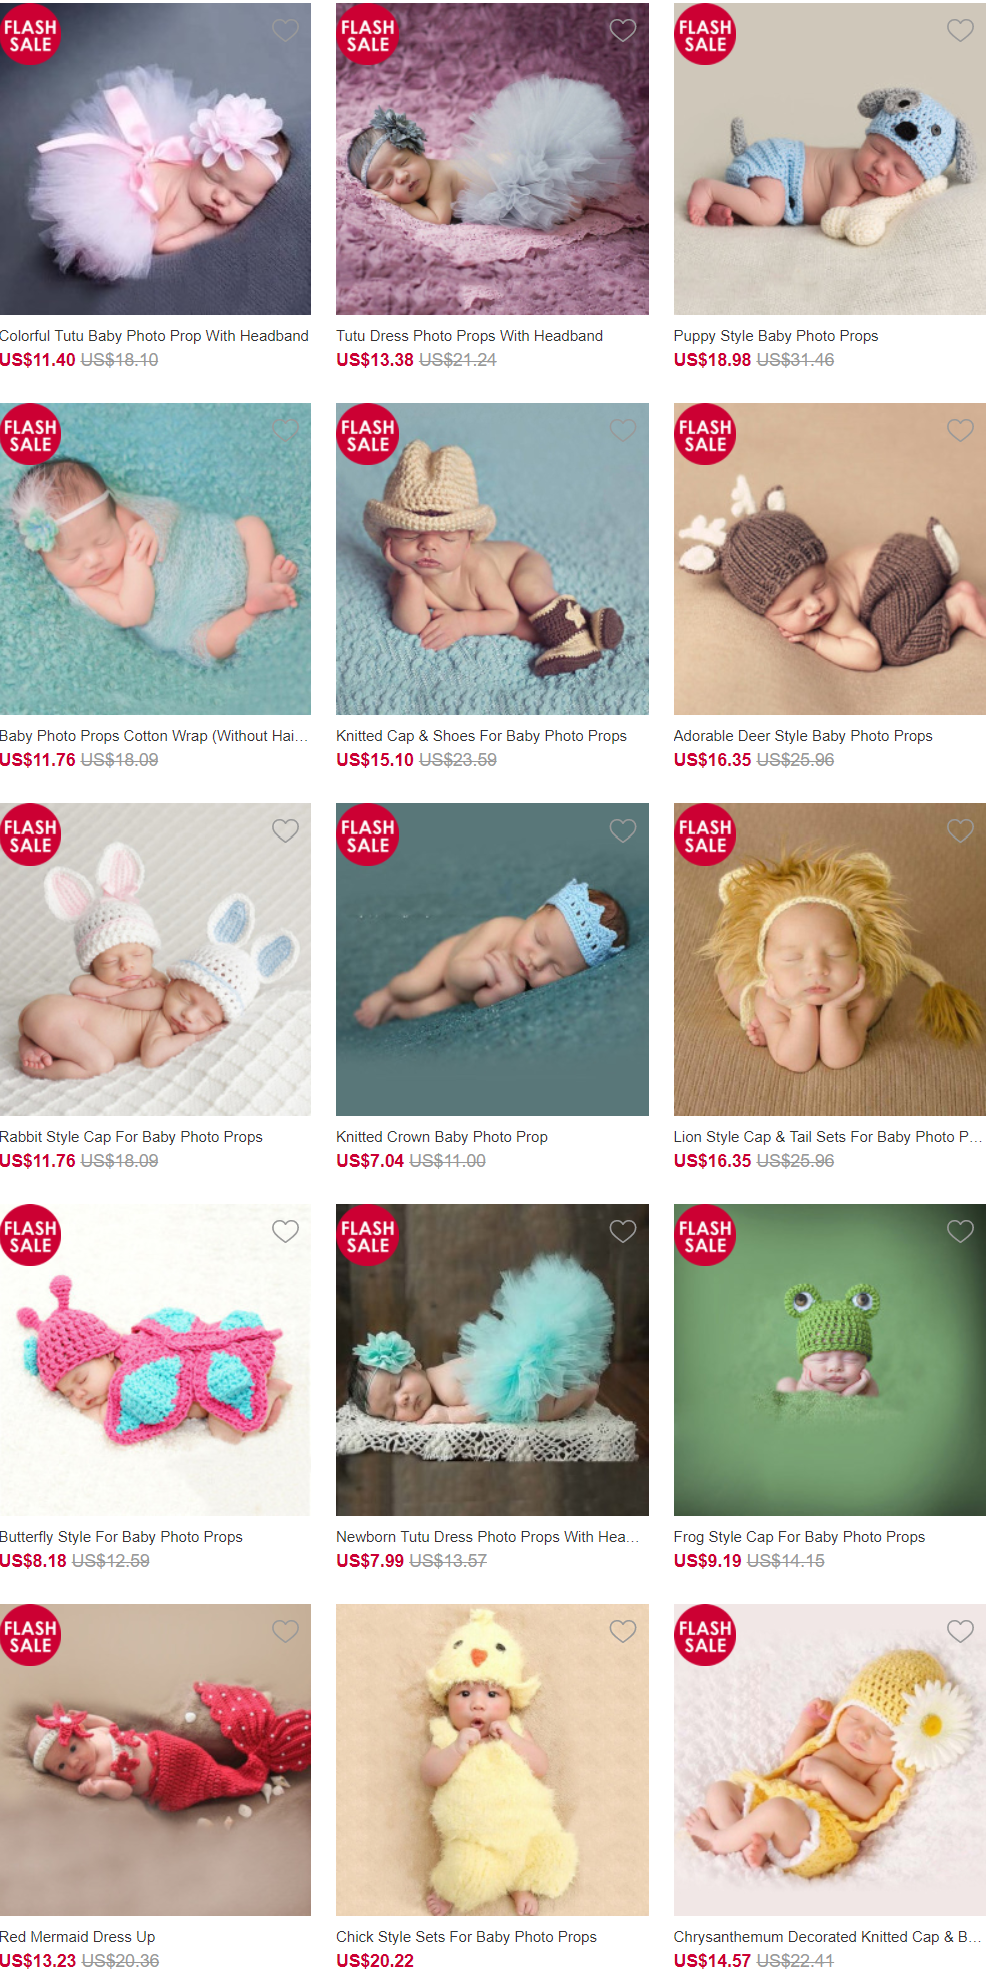 BABY PHOTO PROPS Calladream is a professional online store which